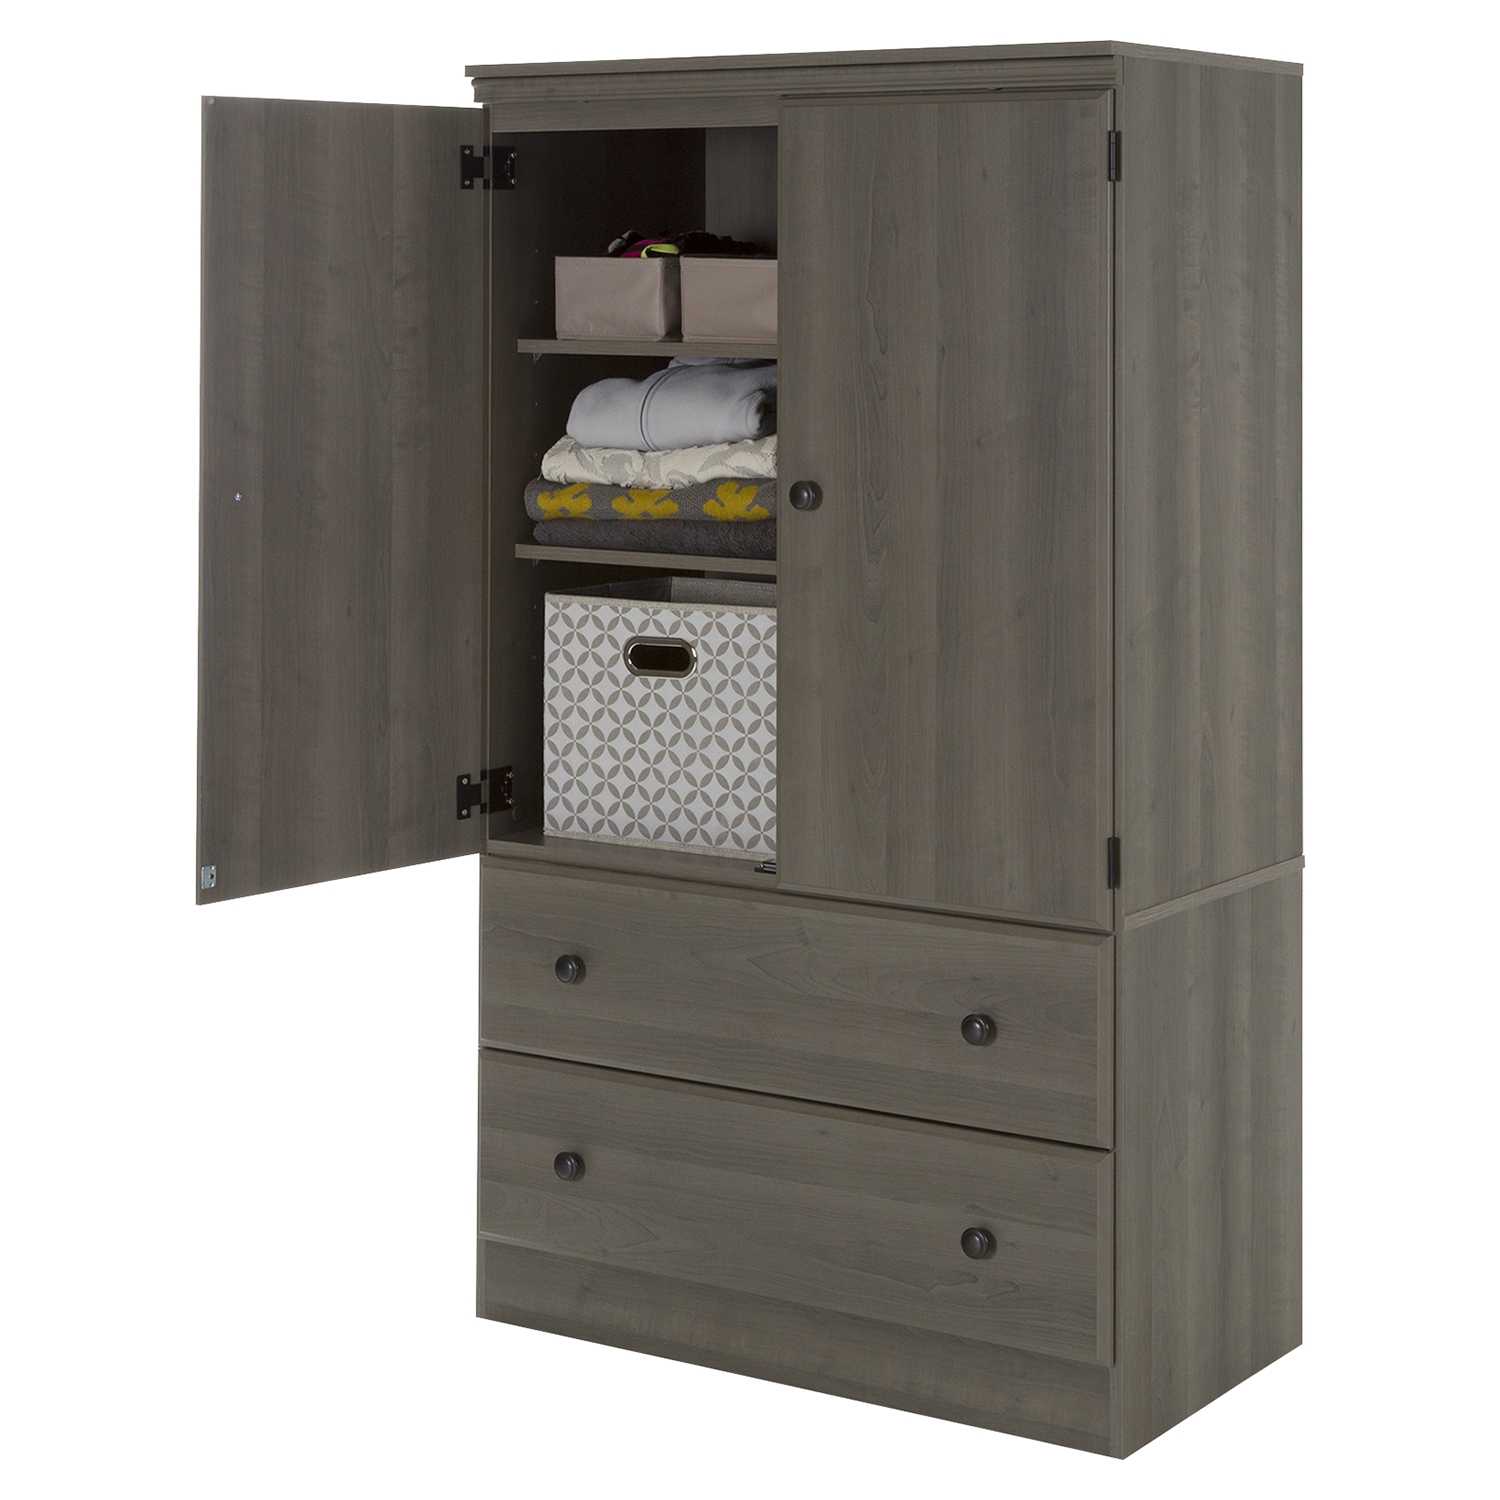 Morgan Armoire - 2 Doors, 2 Drawers, Gray Maple - SS-10173